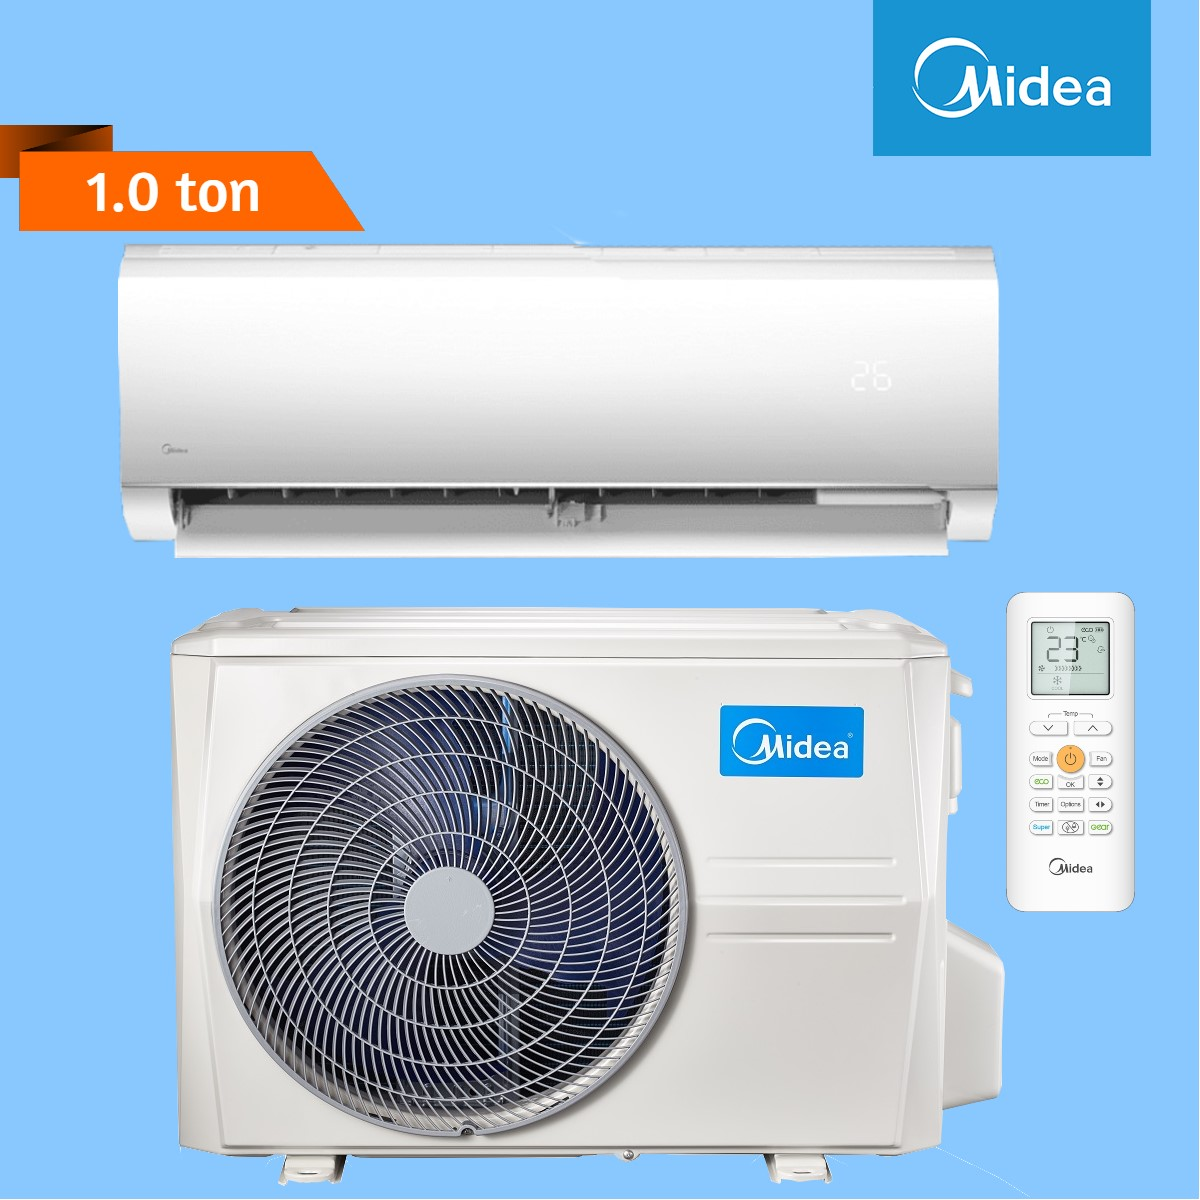 Midea Wall Mounted 1 Ton Air Conditioner (Blanc Series)